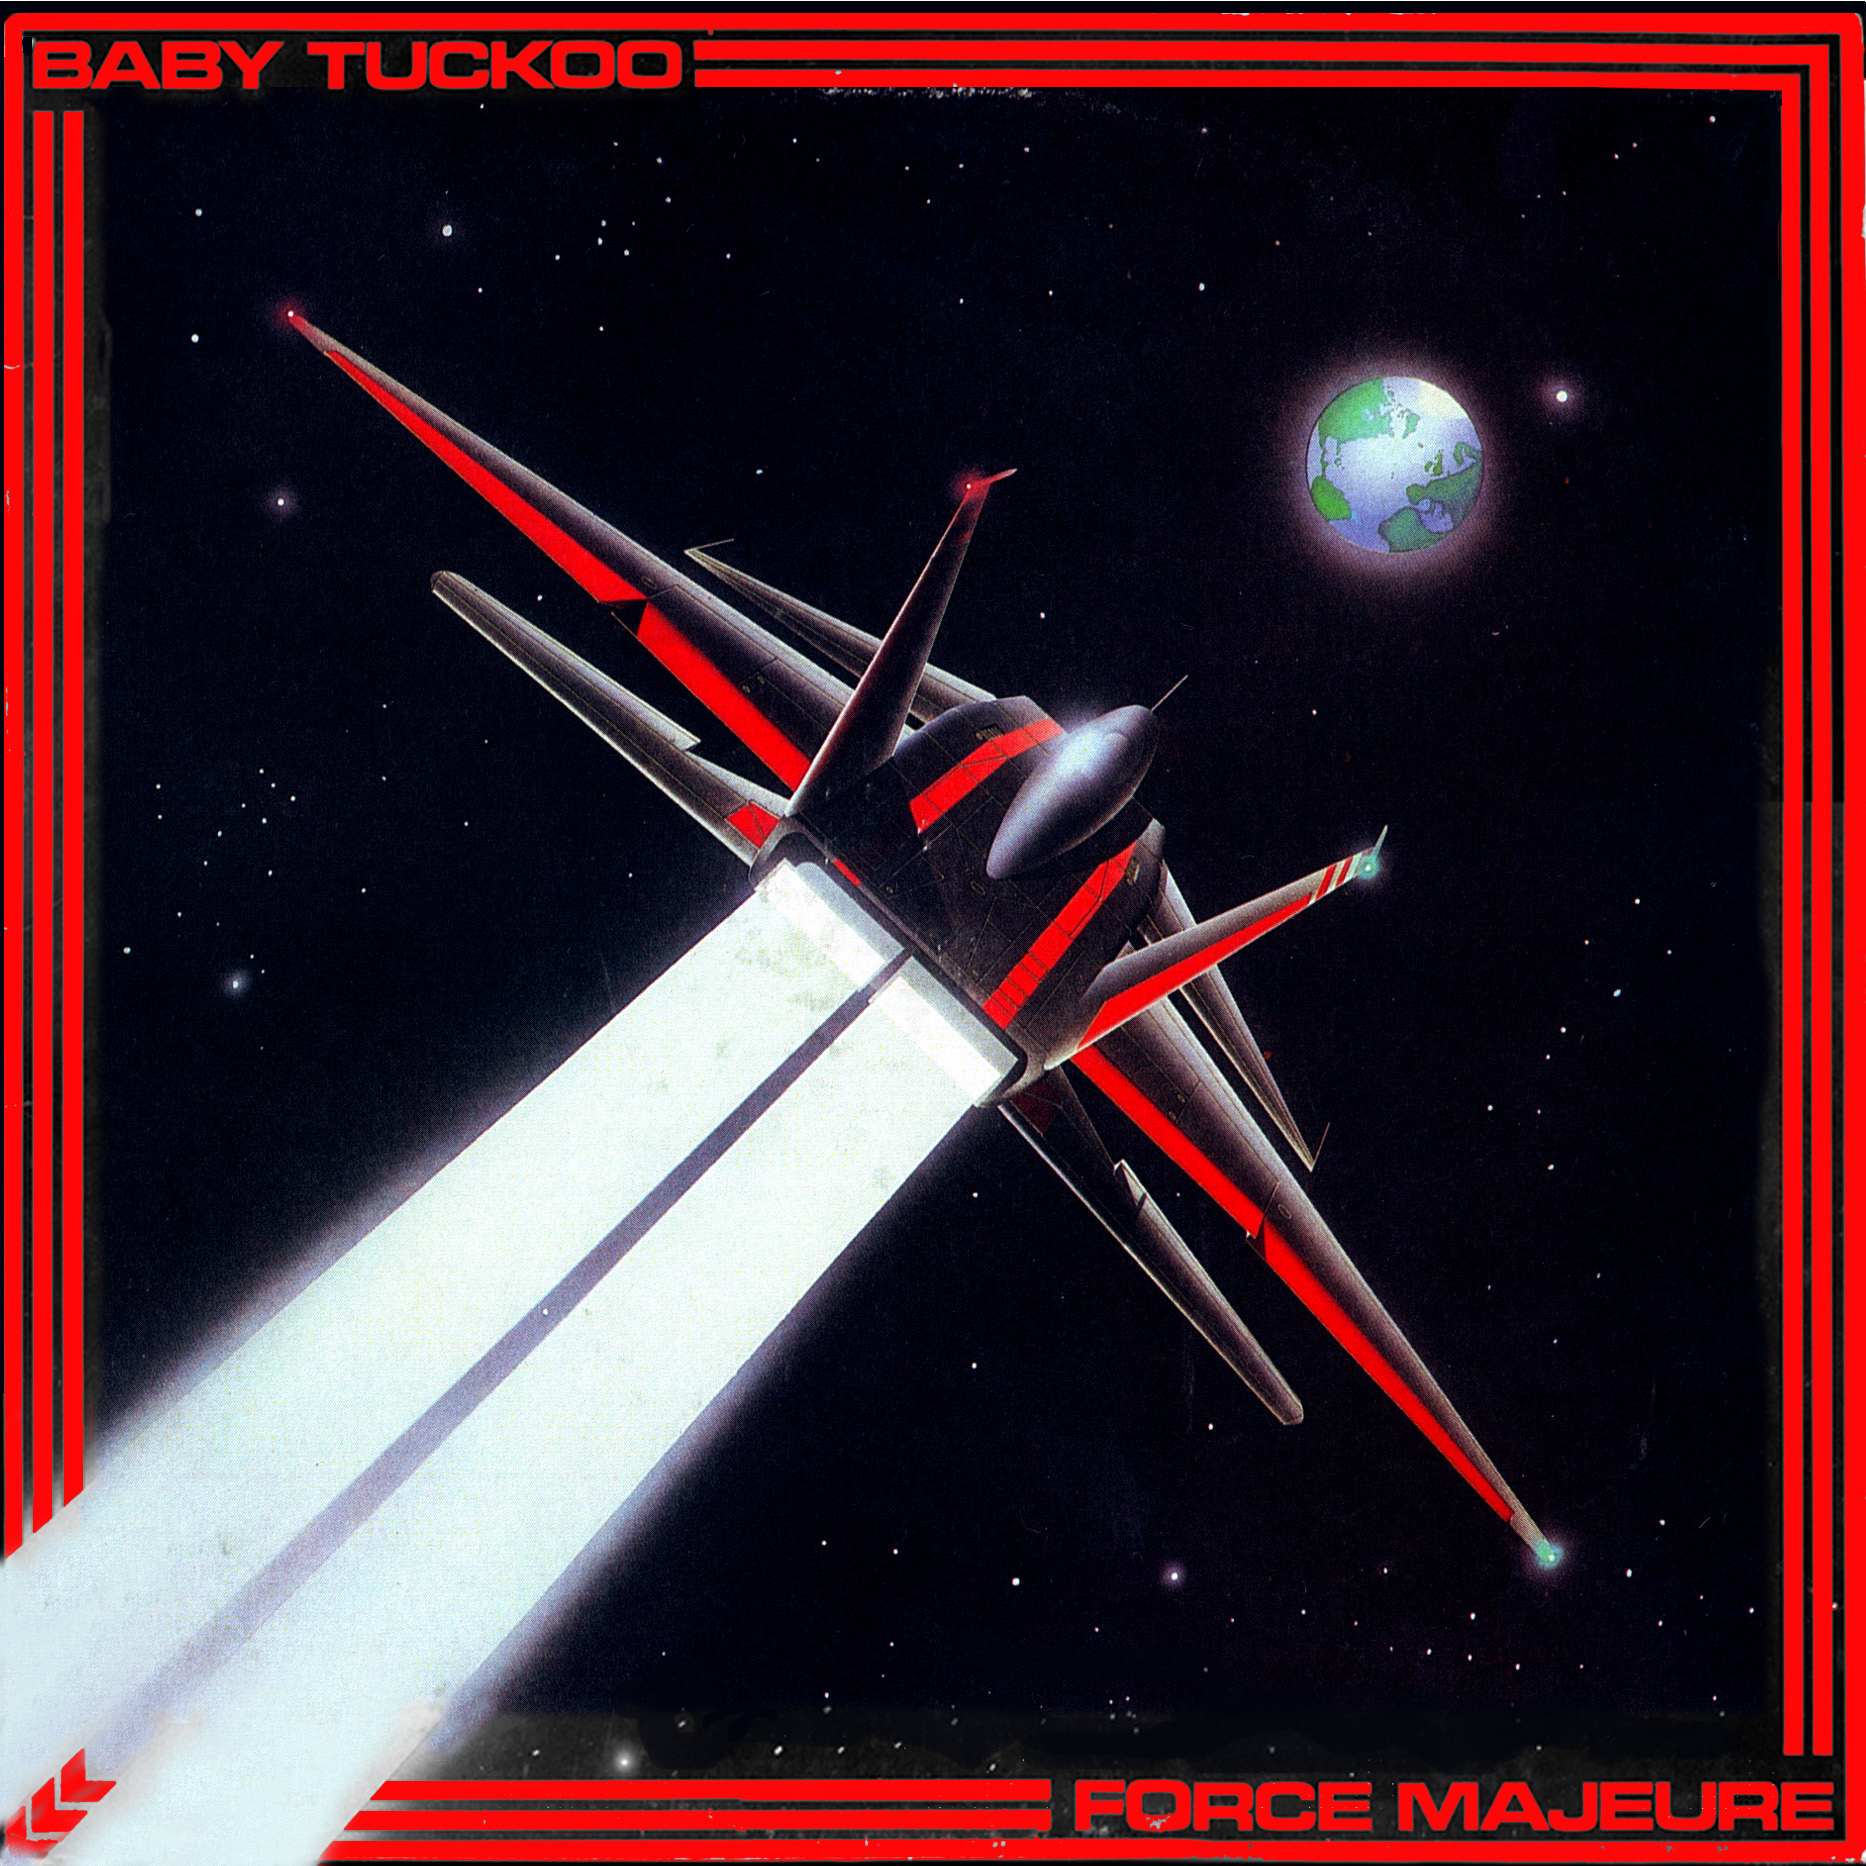 Baby Tuckoo - Force Majure